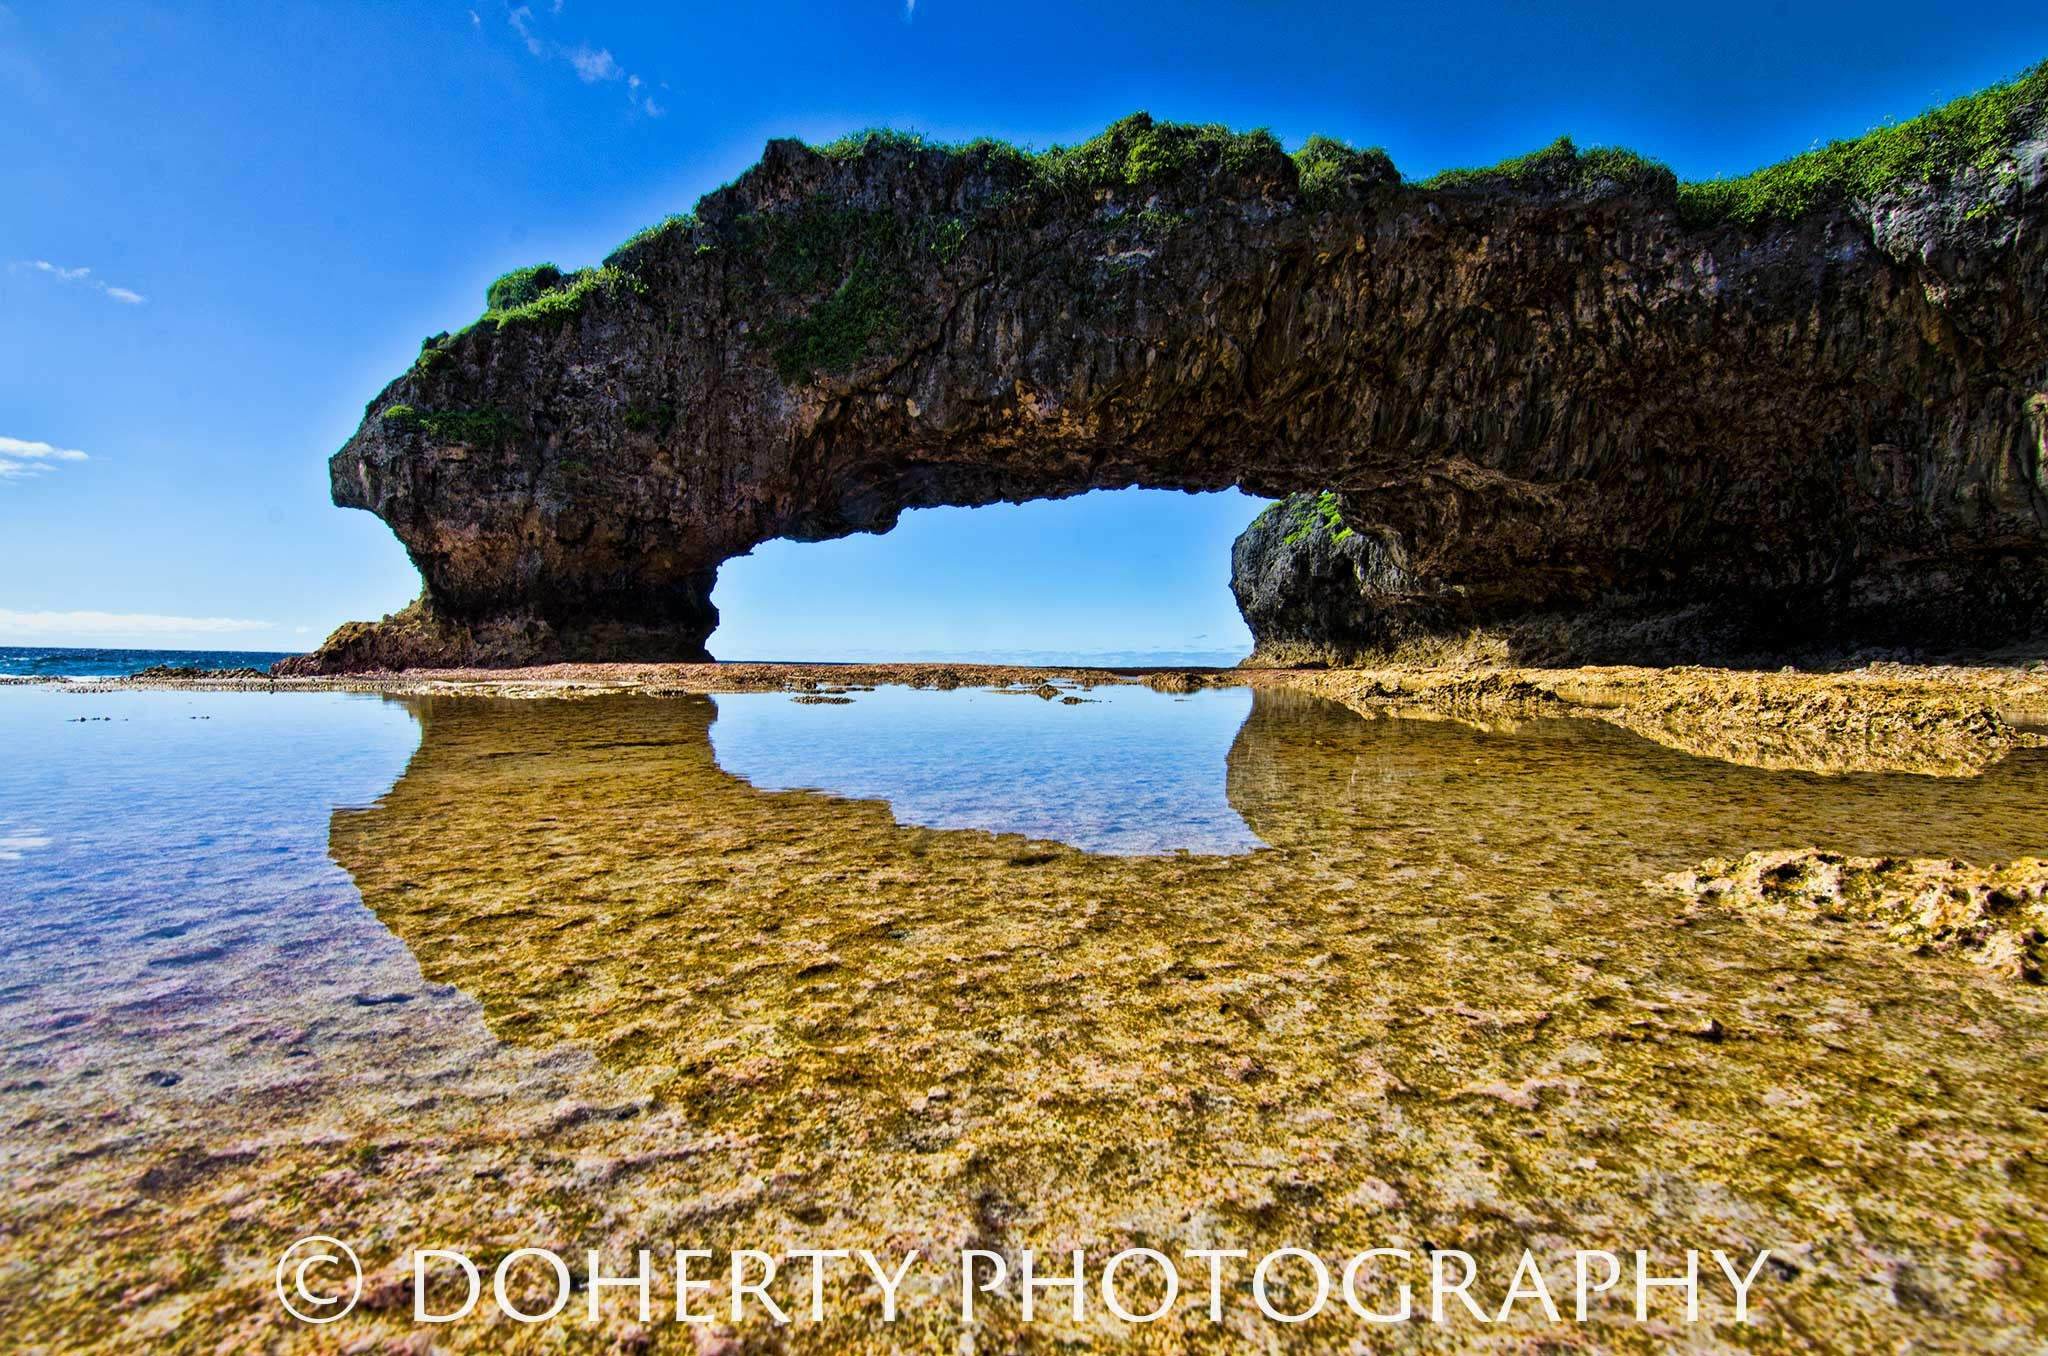 Gateway to the Sea - Doherty Photography